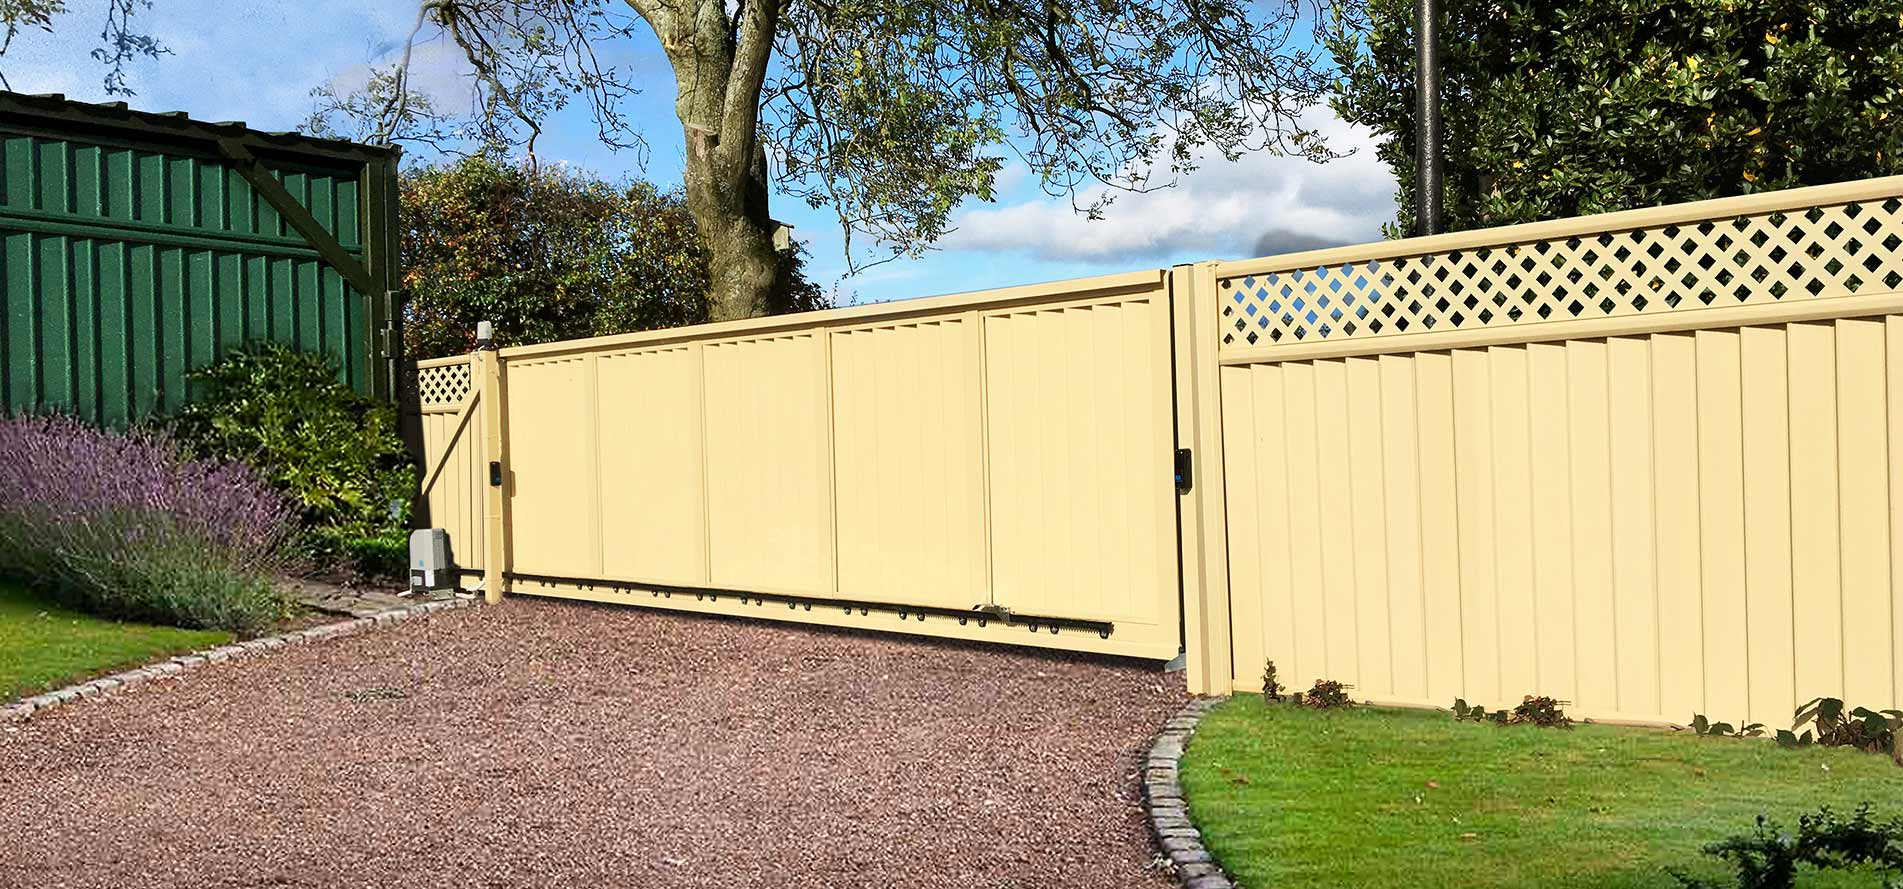 ColourFence: Metal Garden Fencing. ColourRail: Metal Garden Railing. ColourGate: Metal Garden Gates.